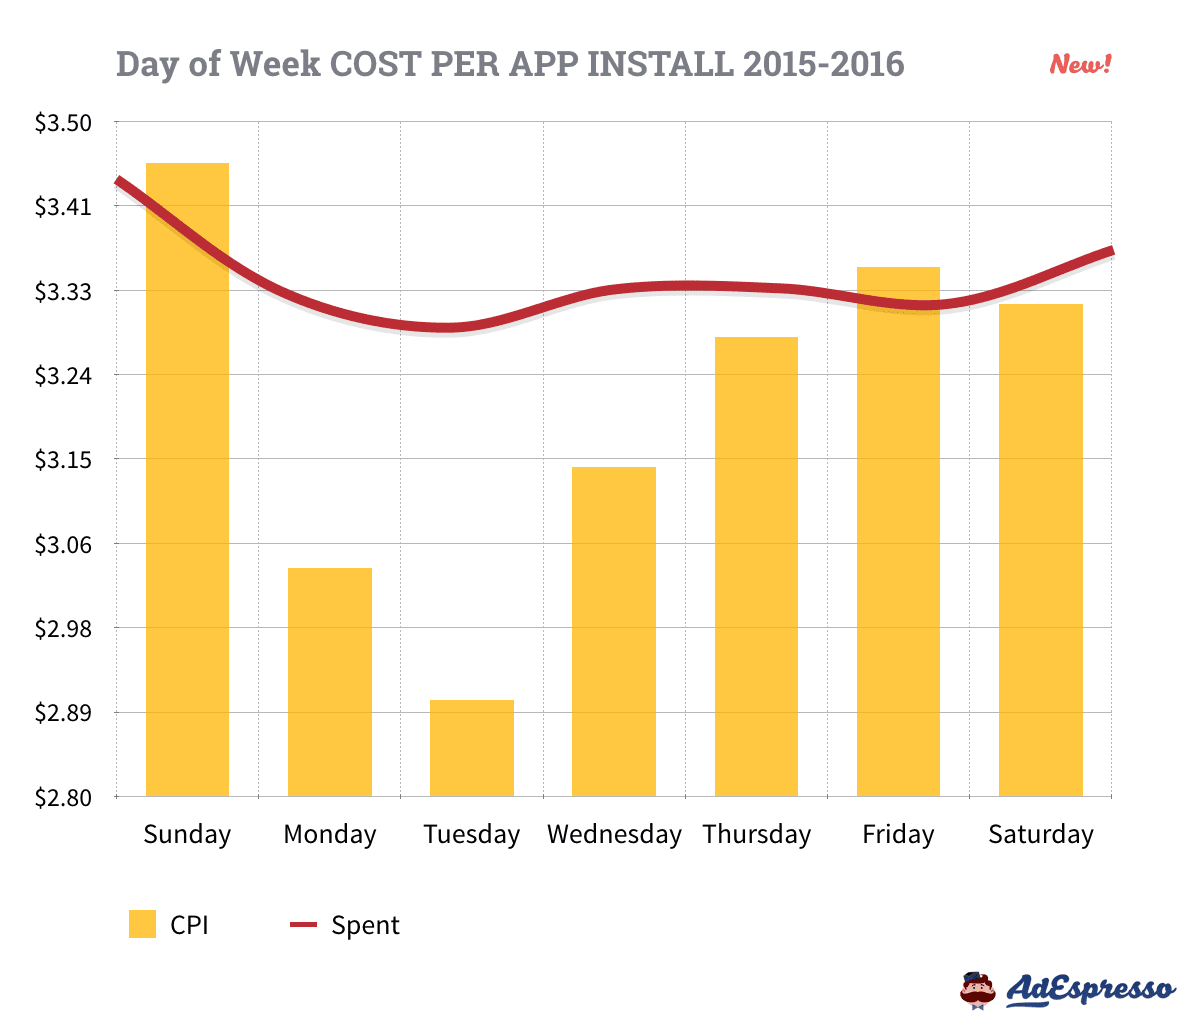 Facebook Advertising Cost for App Installs by Day of Week